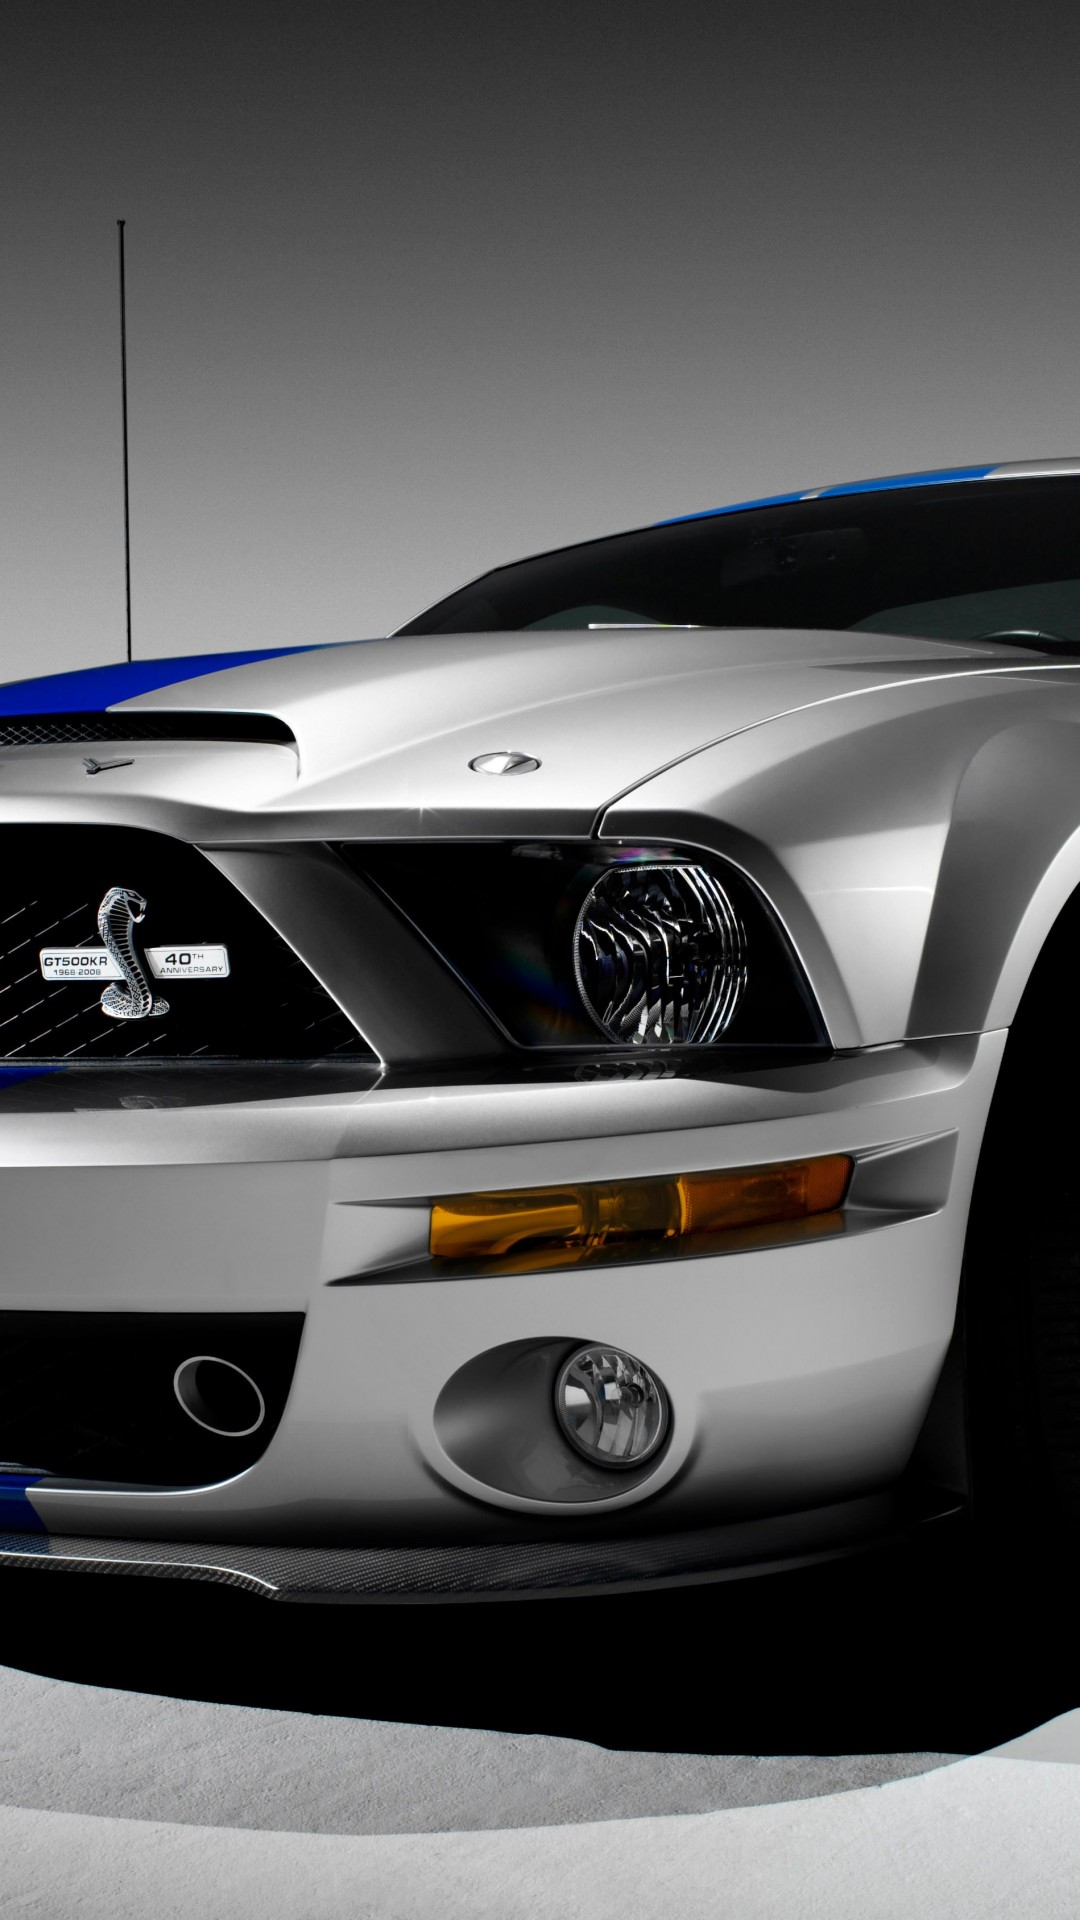 Shelby Mustang GT500KR Wallpaper for Google Nexus 5X